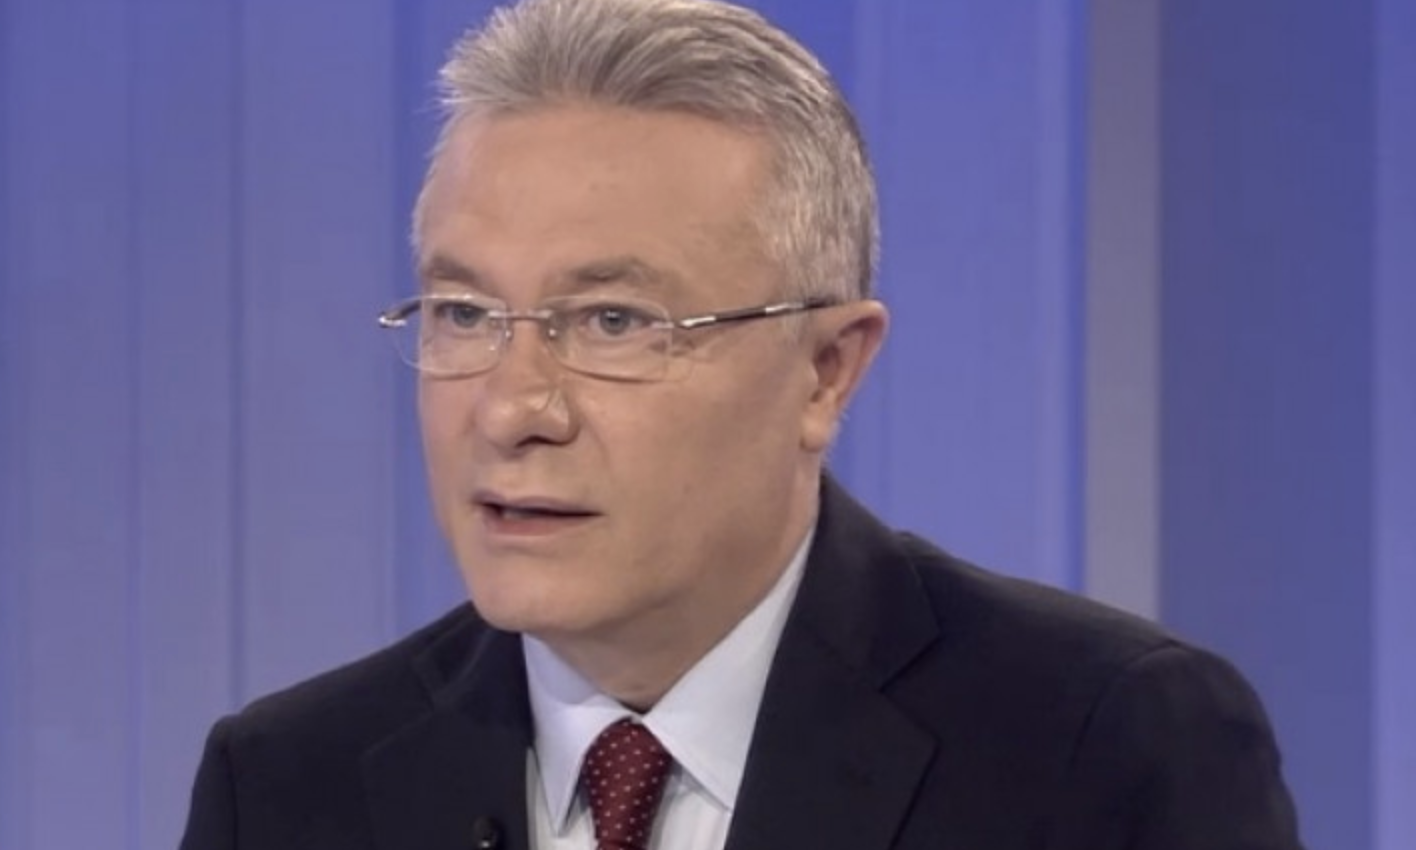 Diaconescu: Remarkable half-opening, Putin's statements on Romania-Russia relations